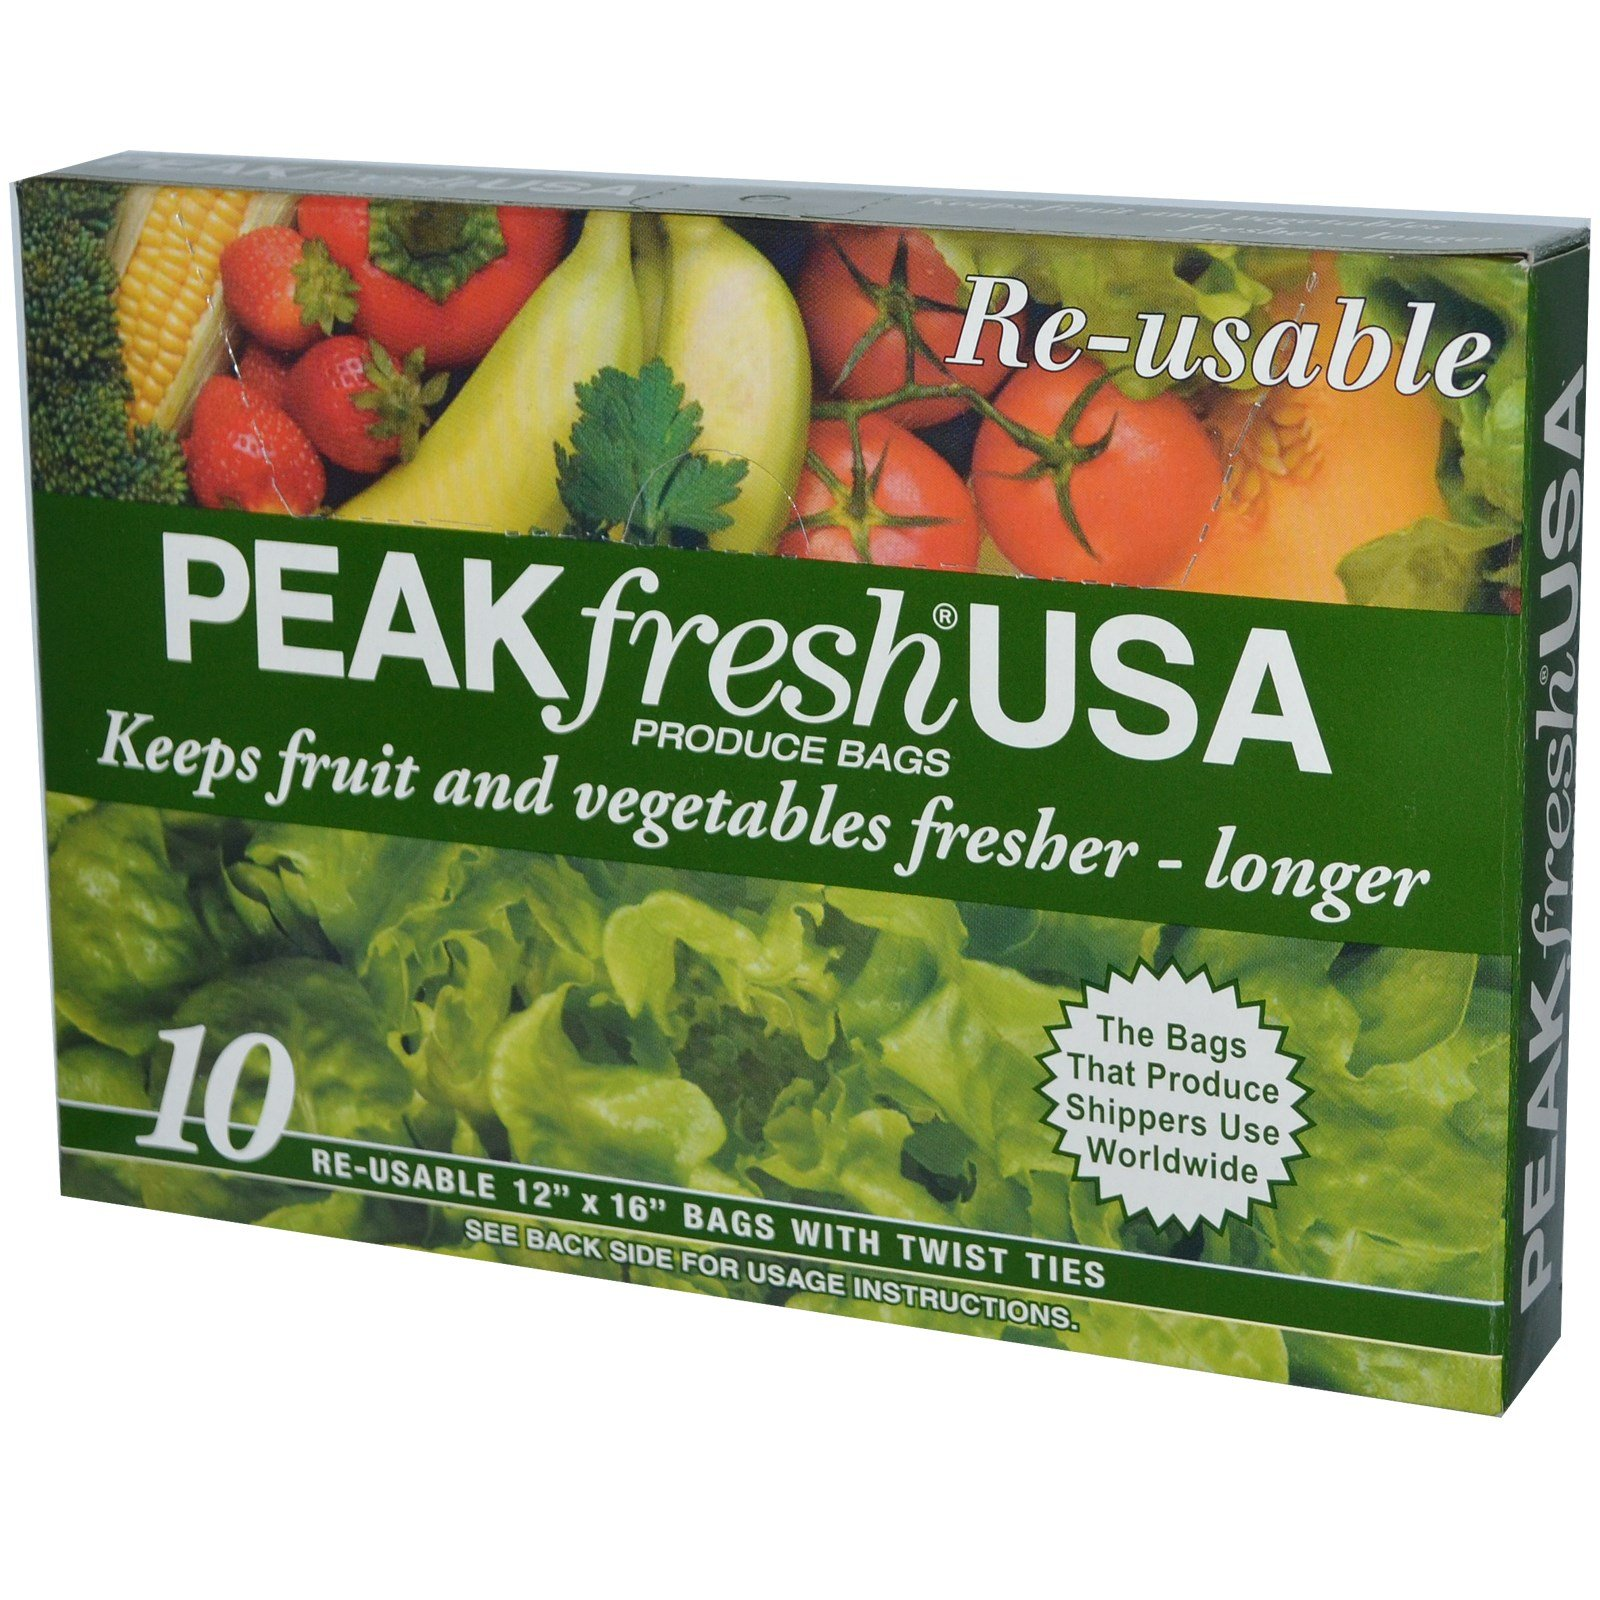 PEAKfresh USA, Produce Bags, Reusable, 10 - 12'' x 16'' Bags, with Twist Ties - 2pc